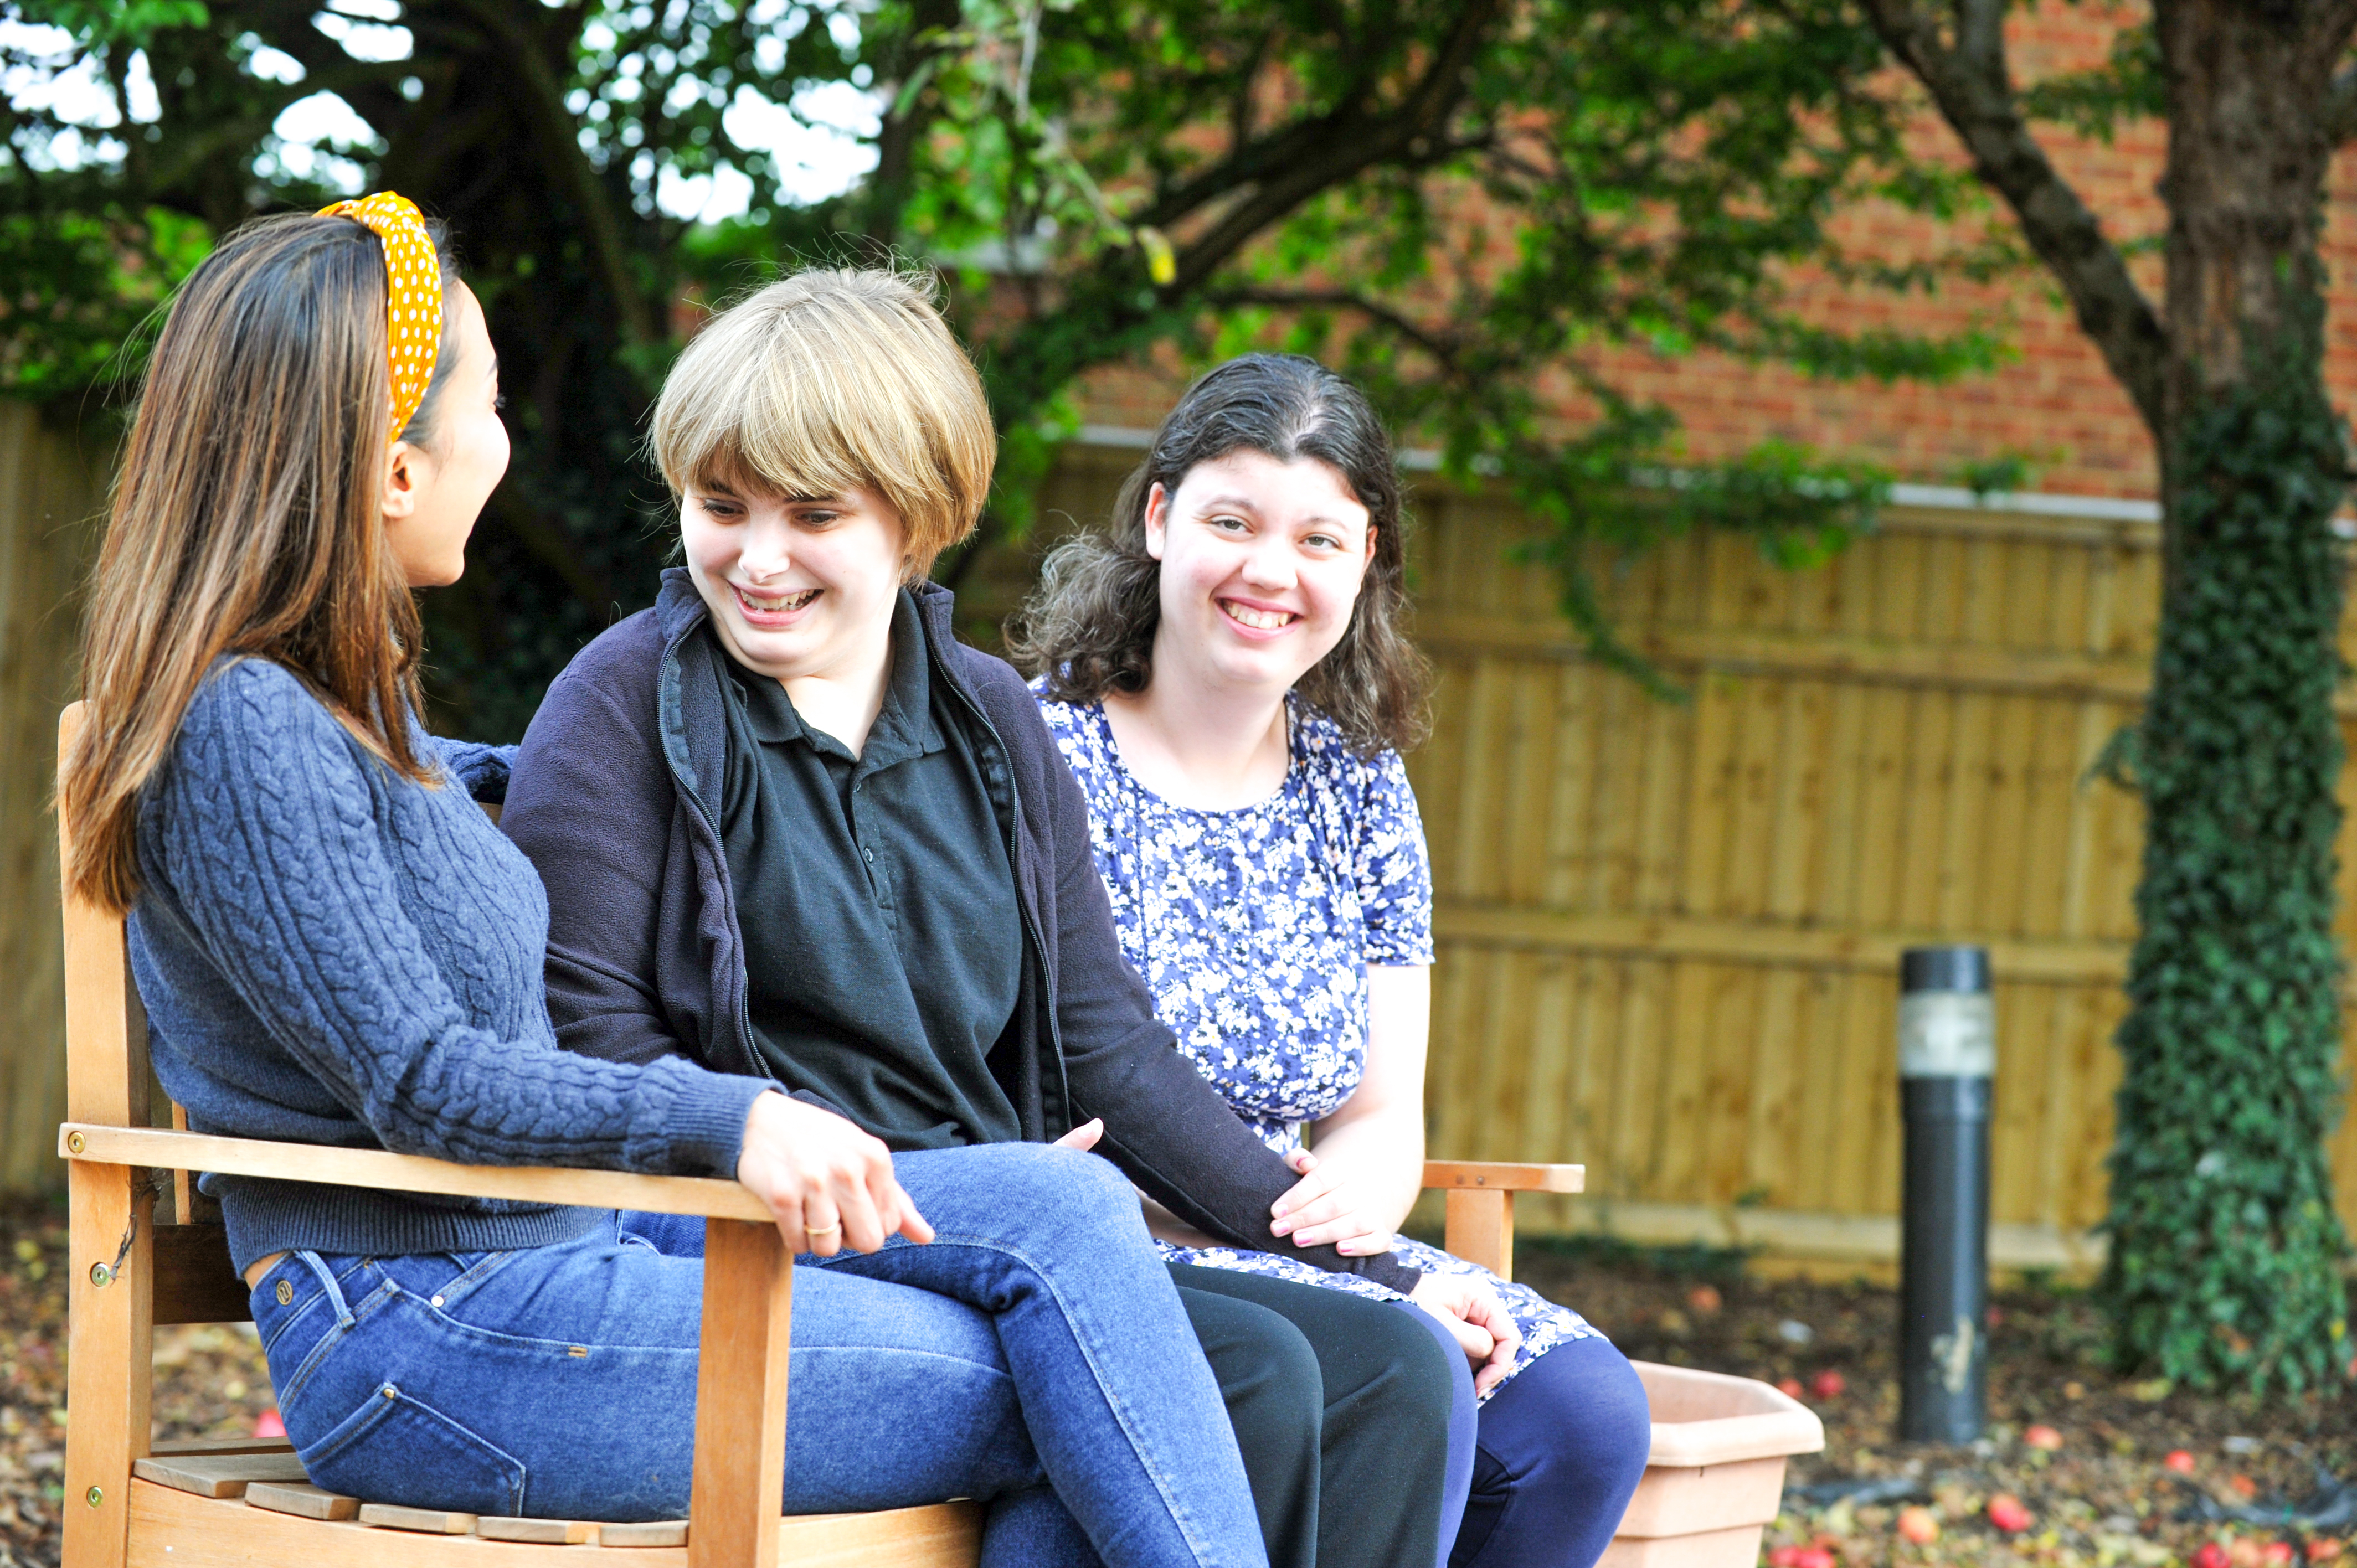 secure setting community supported living hospital women mental health